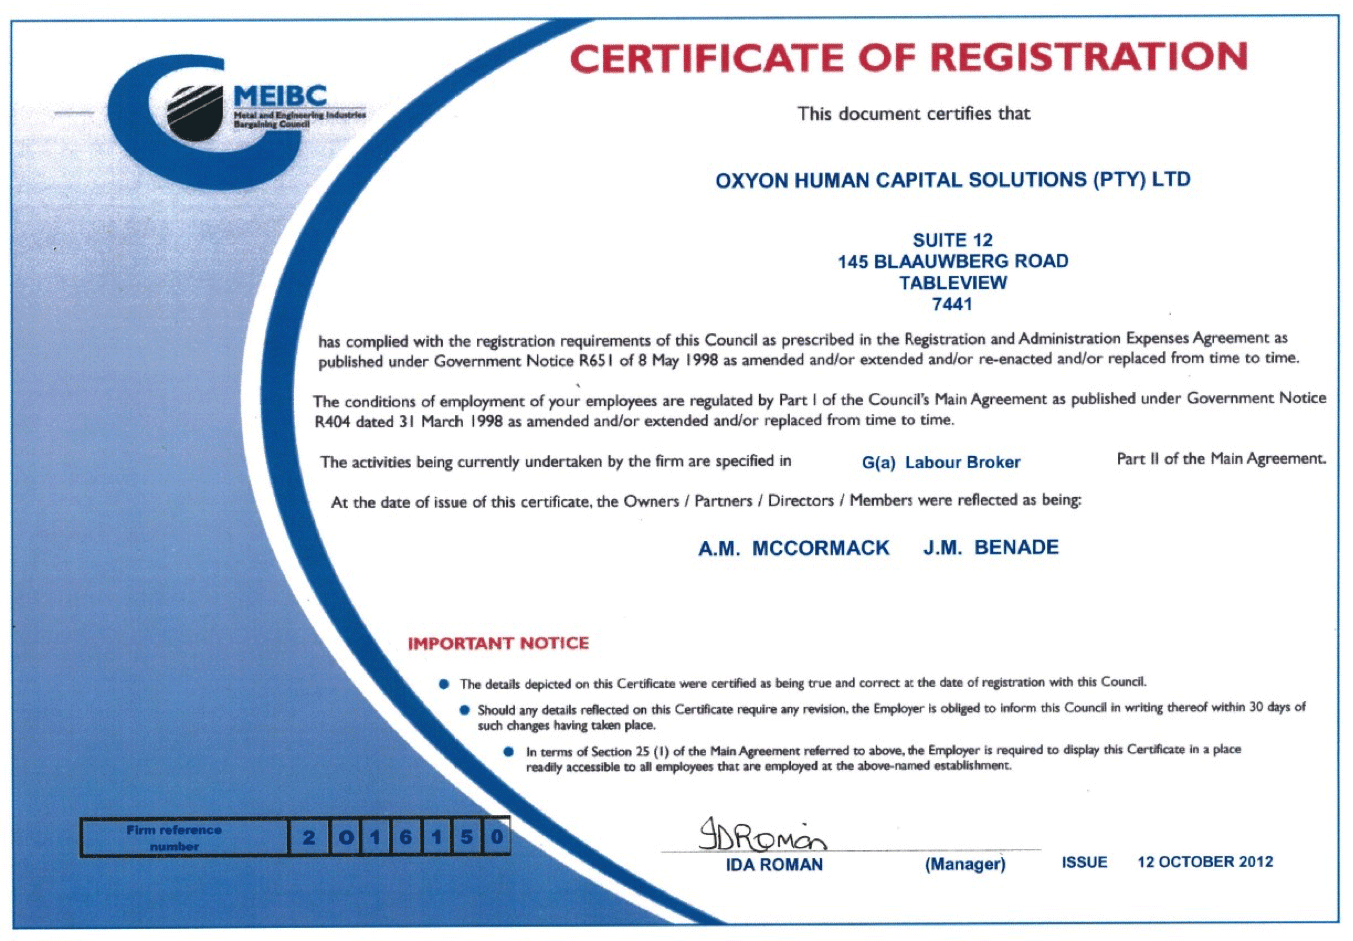 Our MEIBC Certificate